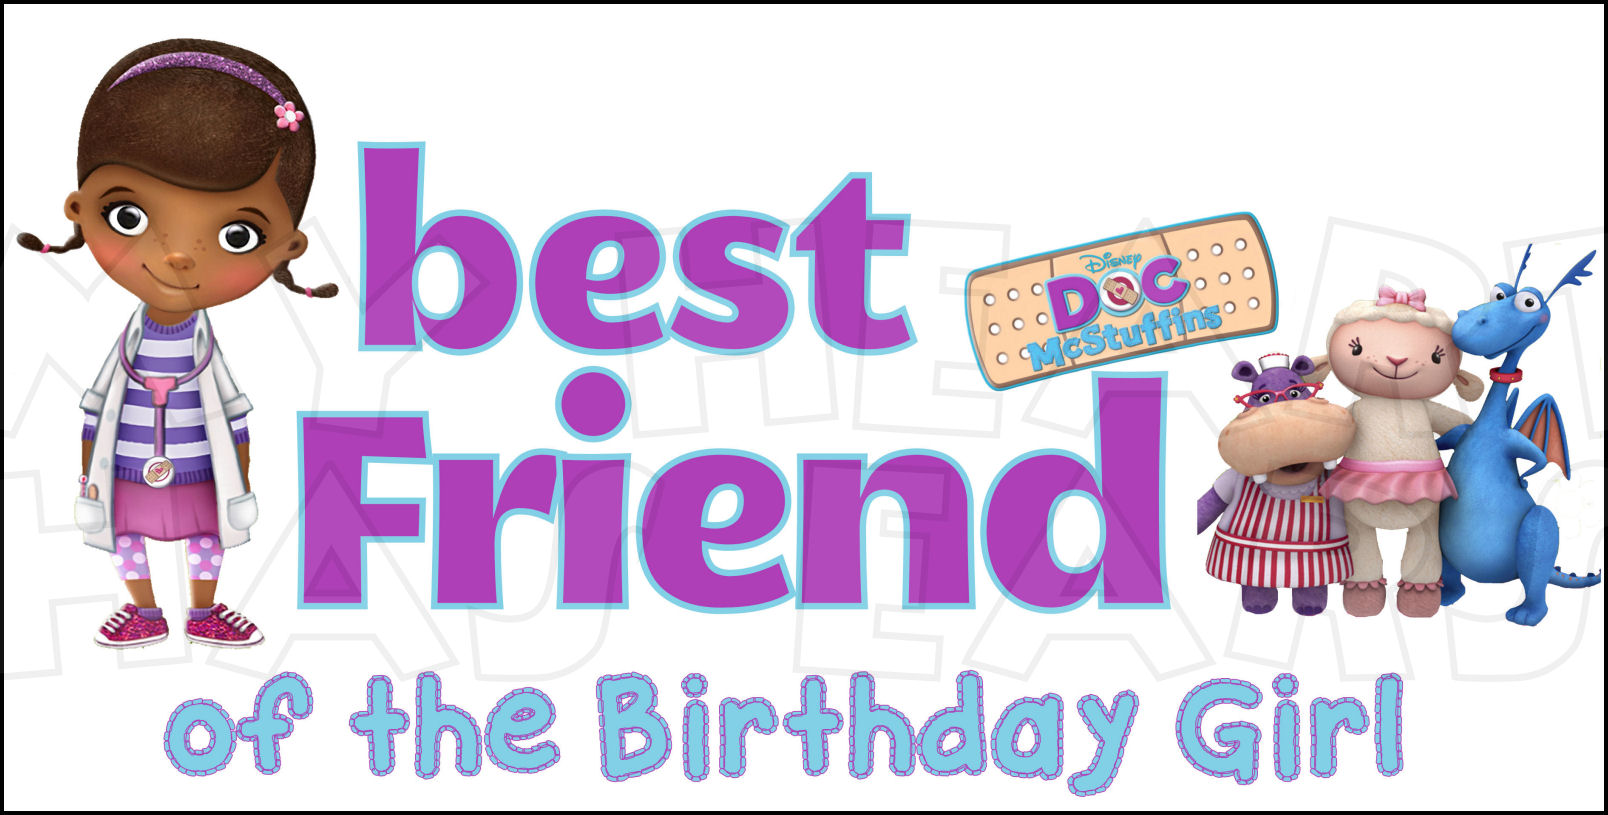 Doc mcstuffins and friends clipart picture freeuse library Doc McStuffins :: My Heart Has Ears picture freeuse library